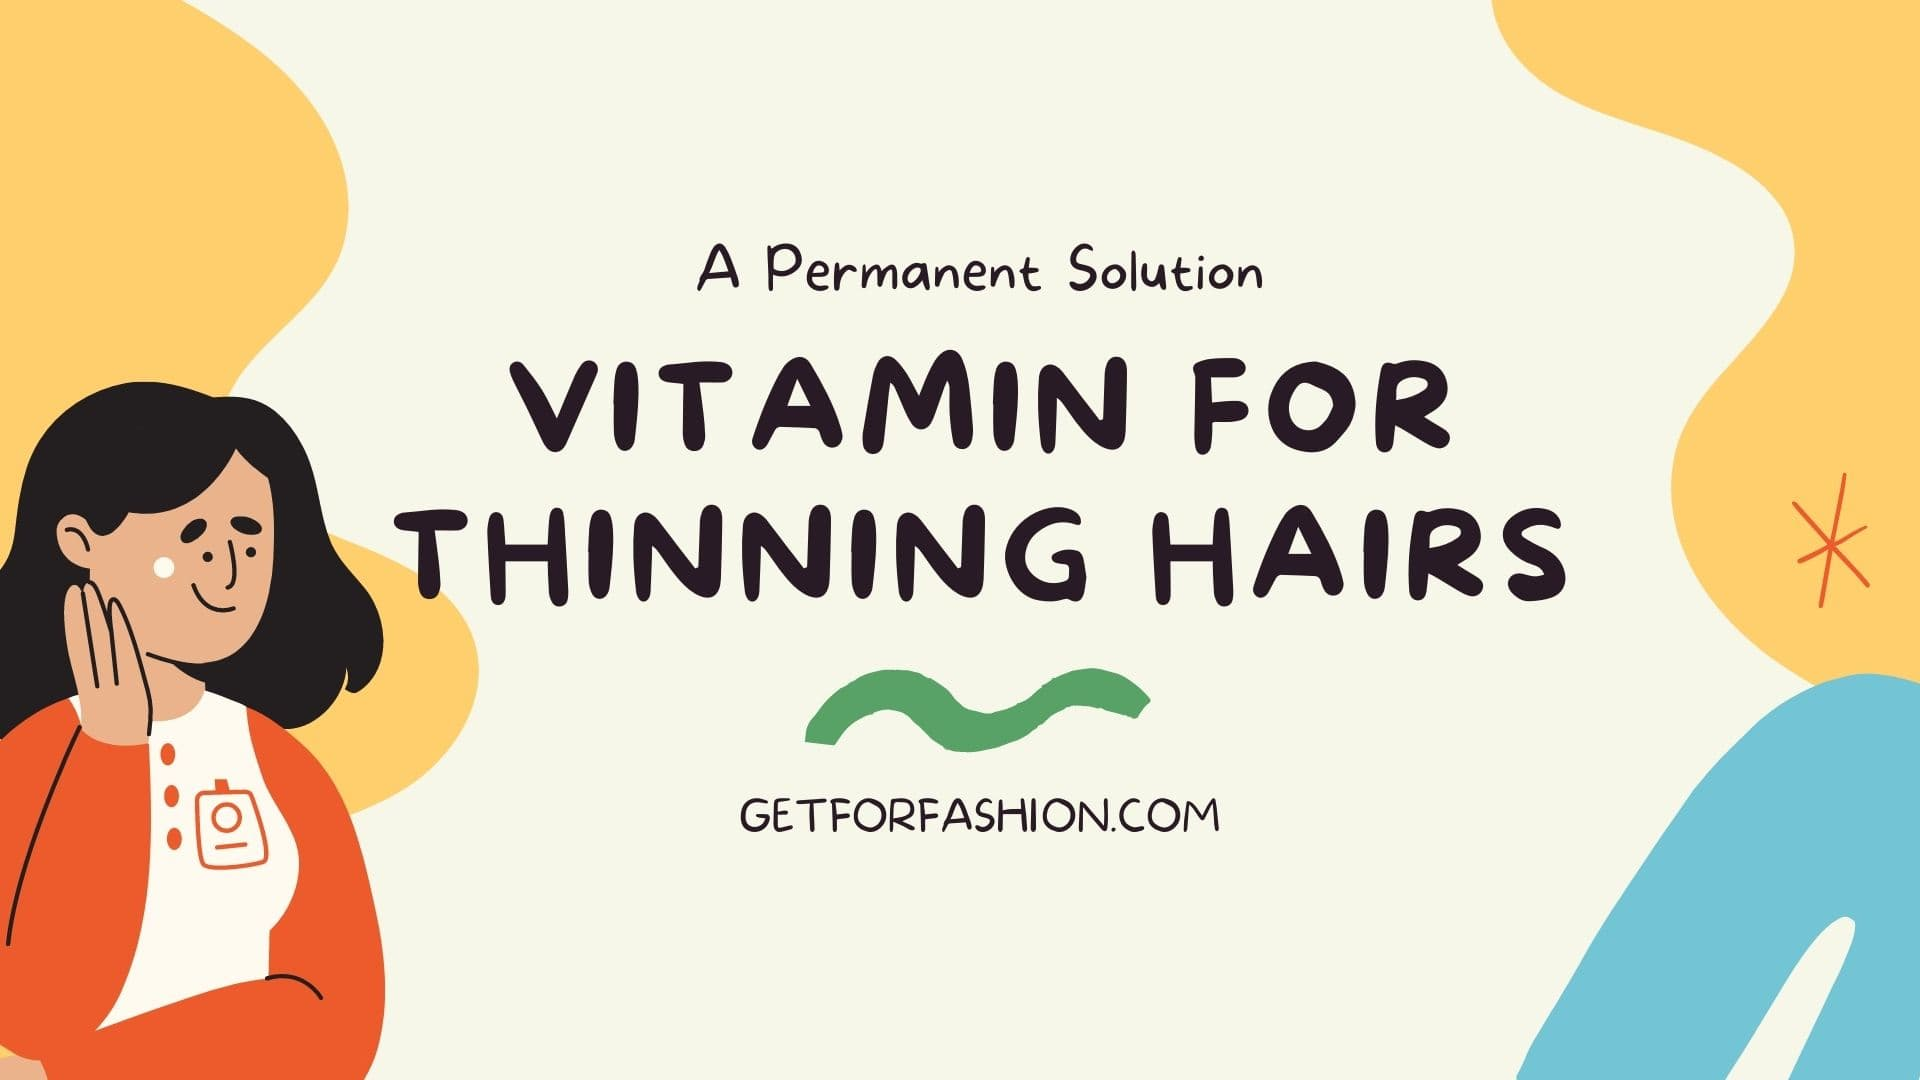 Vitamin for Thinning Hairs